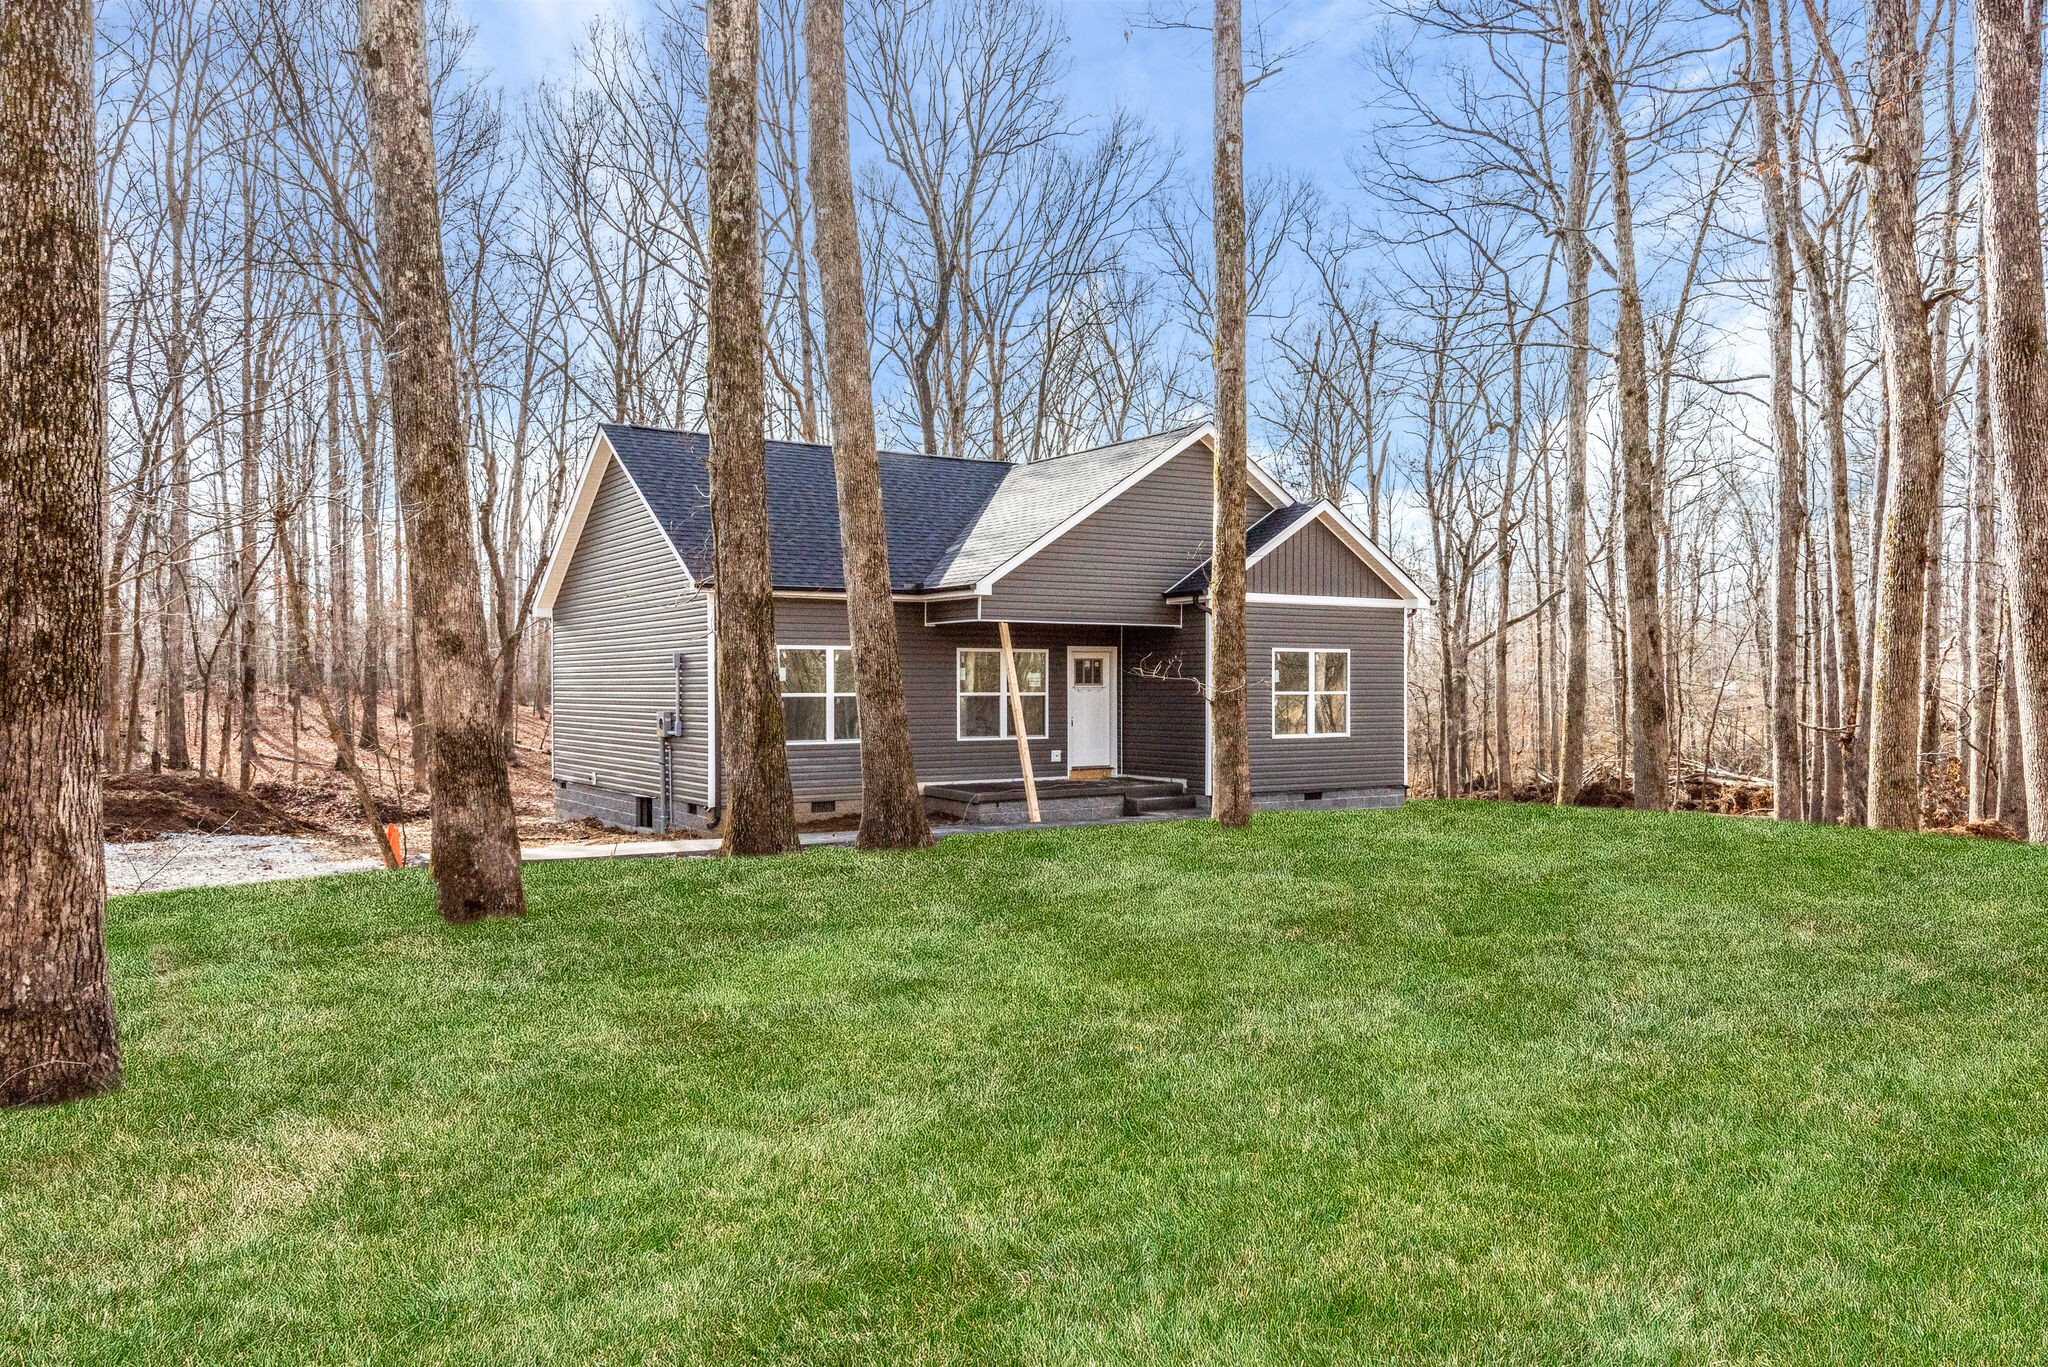 BRAND NEW HOME*SITUATED on 5.01 ACRES+/-*Awesome Country Setting-Land is GORGEOUS*ALL ONE LEVEL FLOO